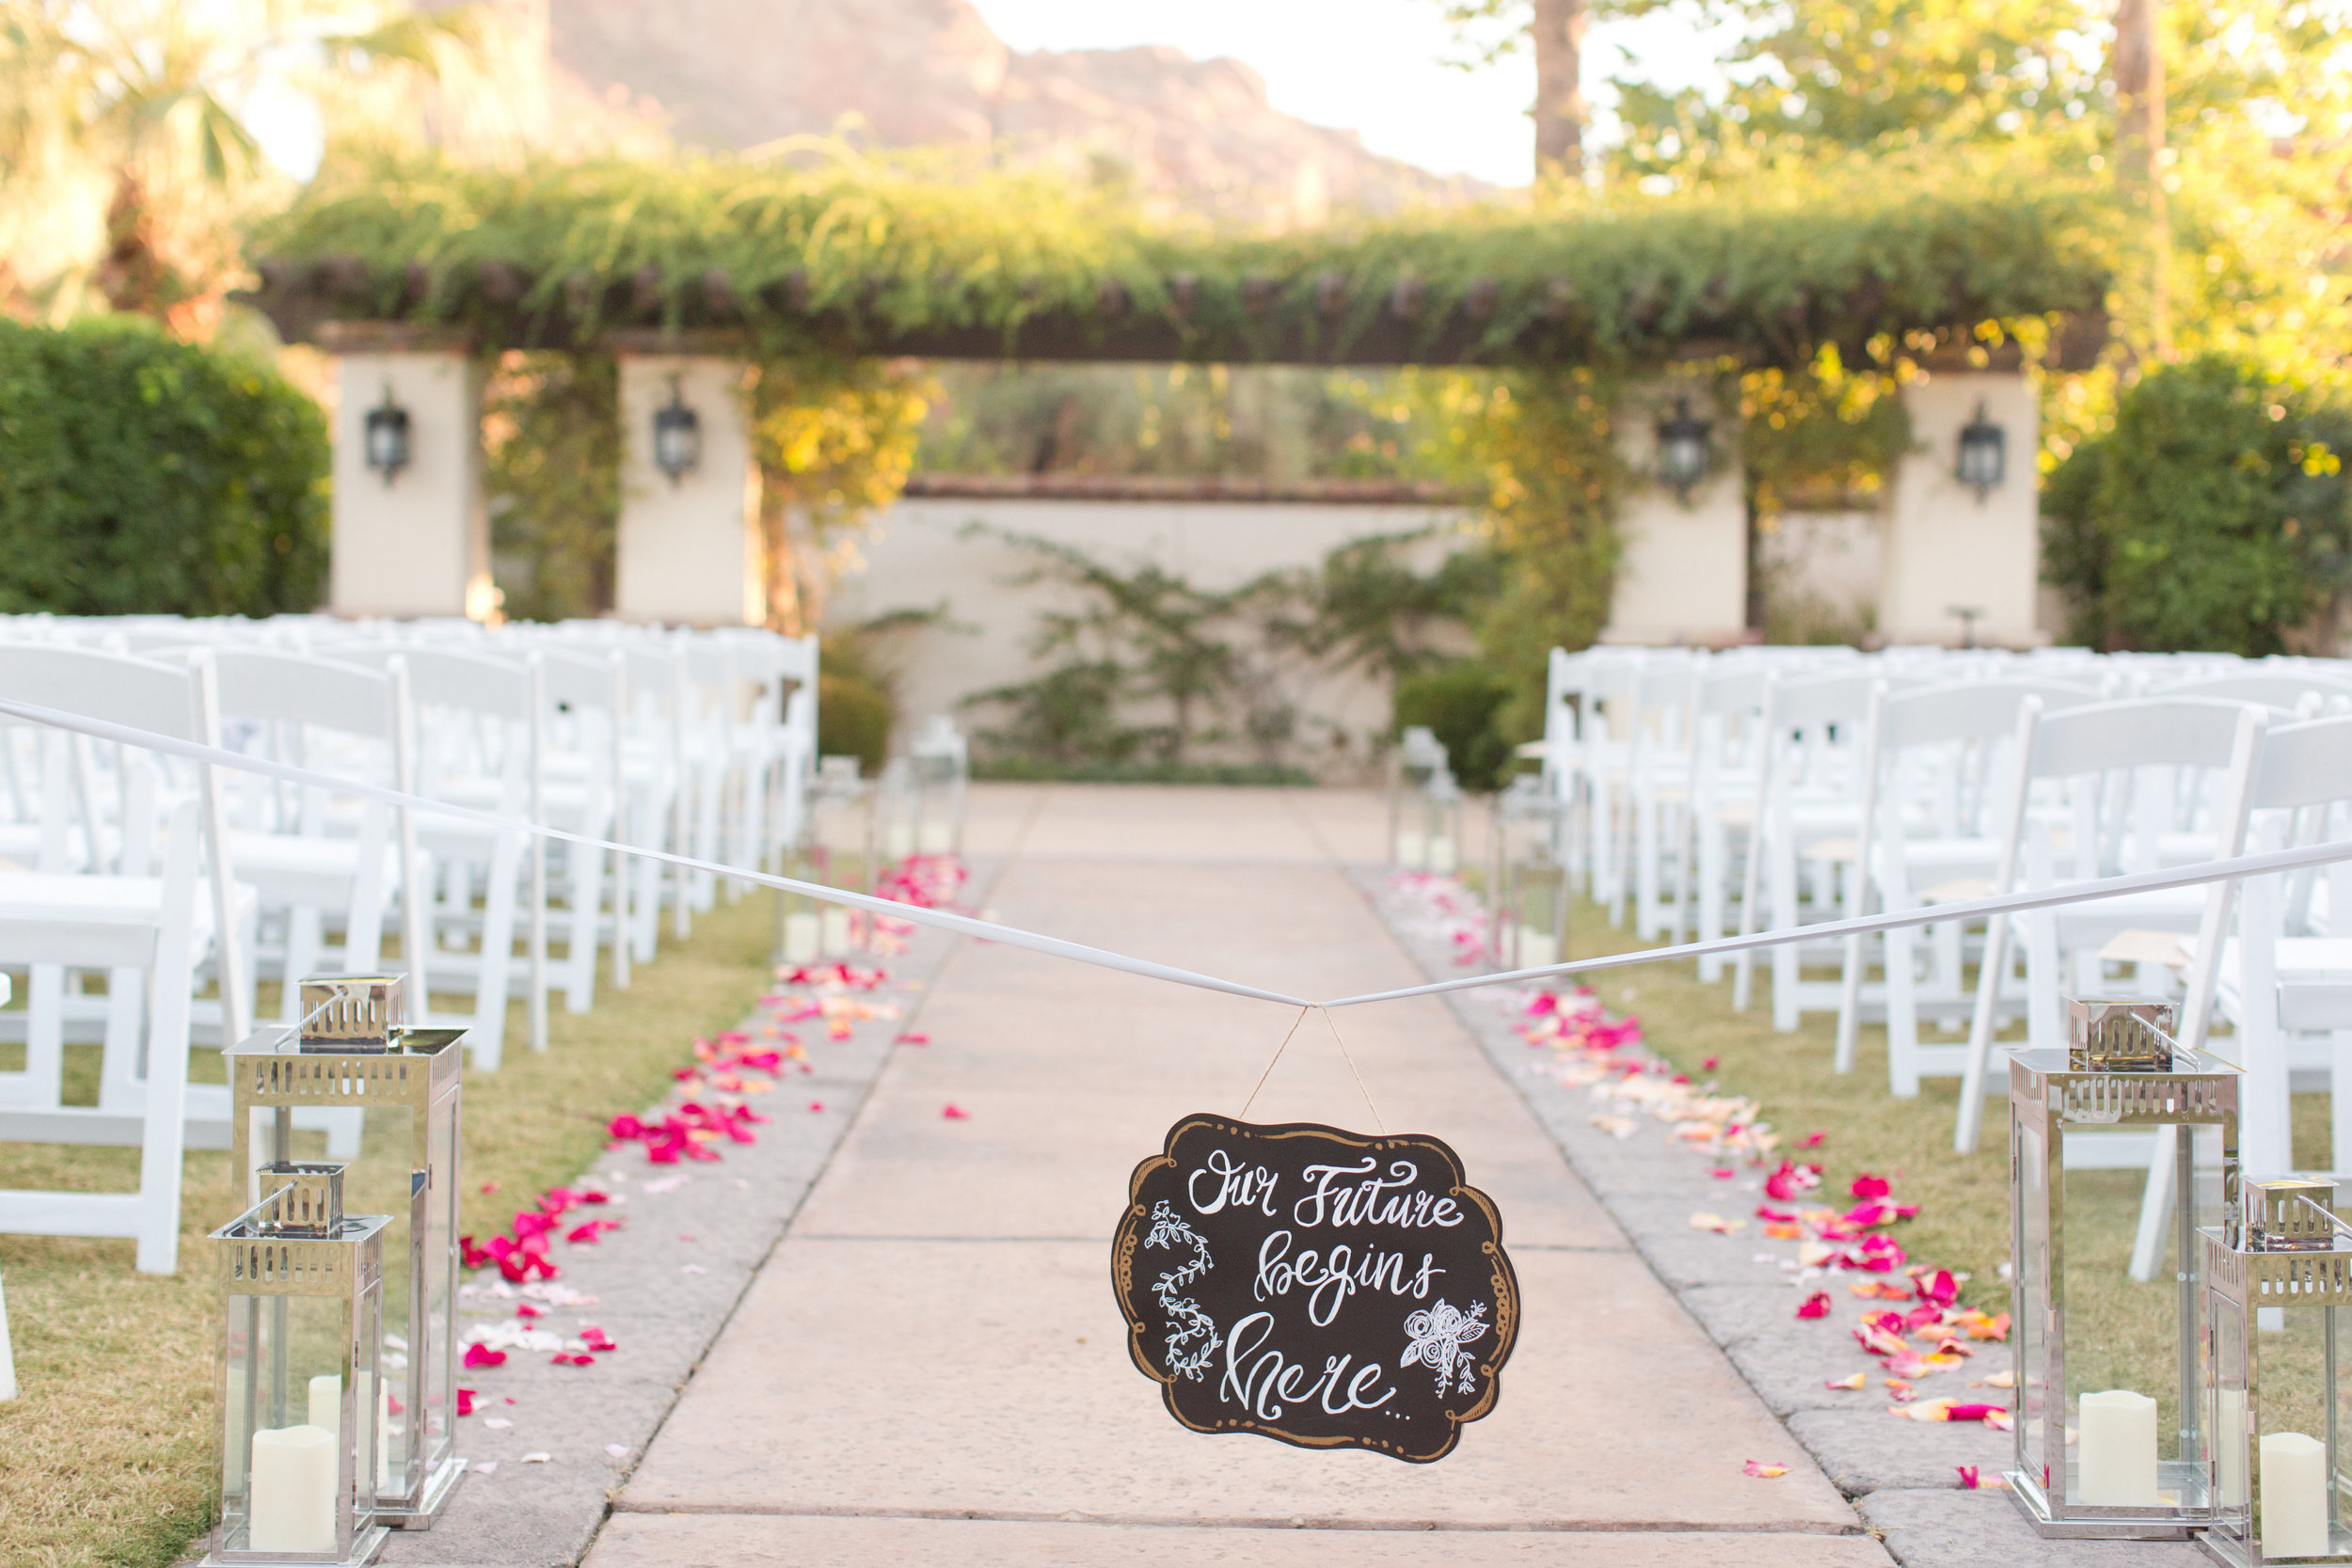 Phoenix-Scottsdale-Arizona-Wedding-Planner-Wedding-Venue-Destination-Wedding-Planner, Omni Montelucia weddings, sunset weddings, Arizona Sunset weddings, wedding details, ceremony details, ceremony lanterns, ceremony aisle